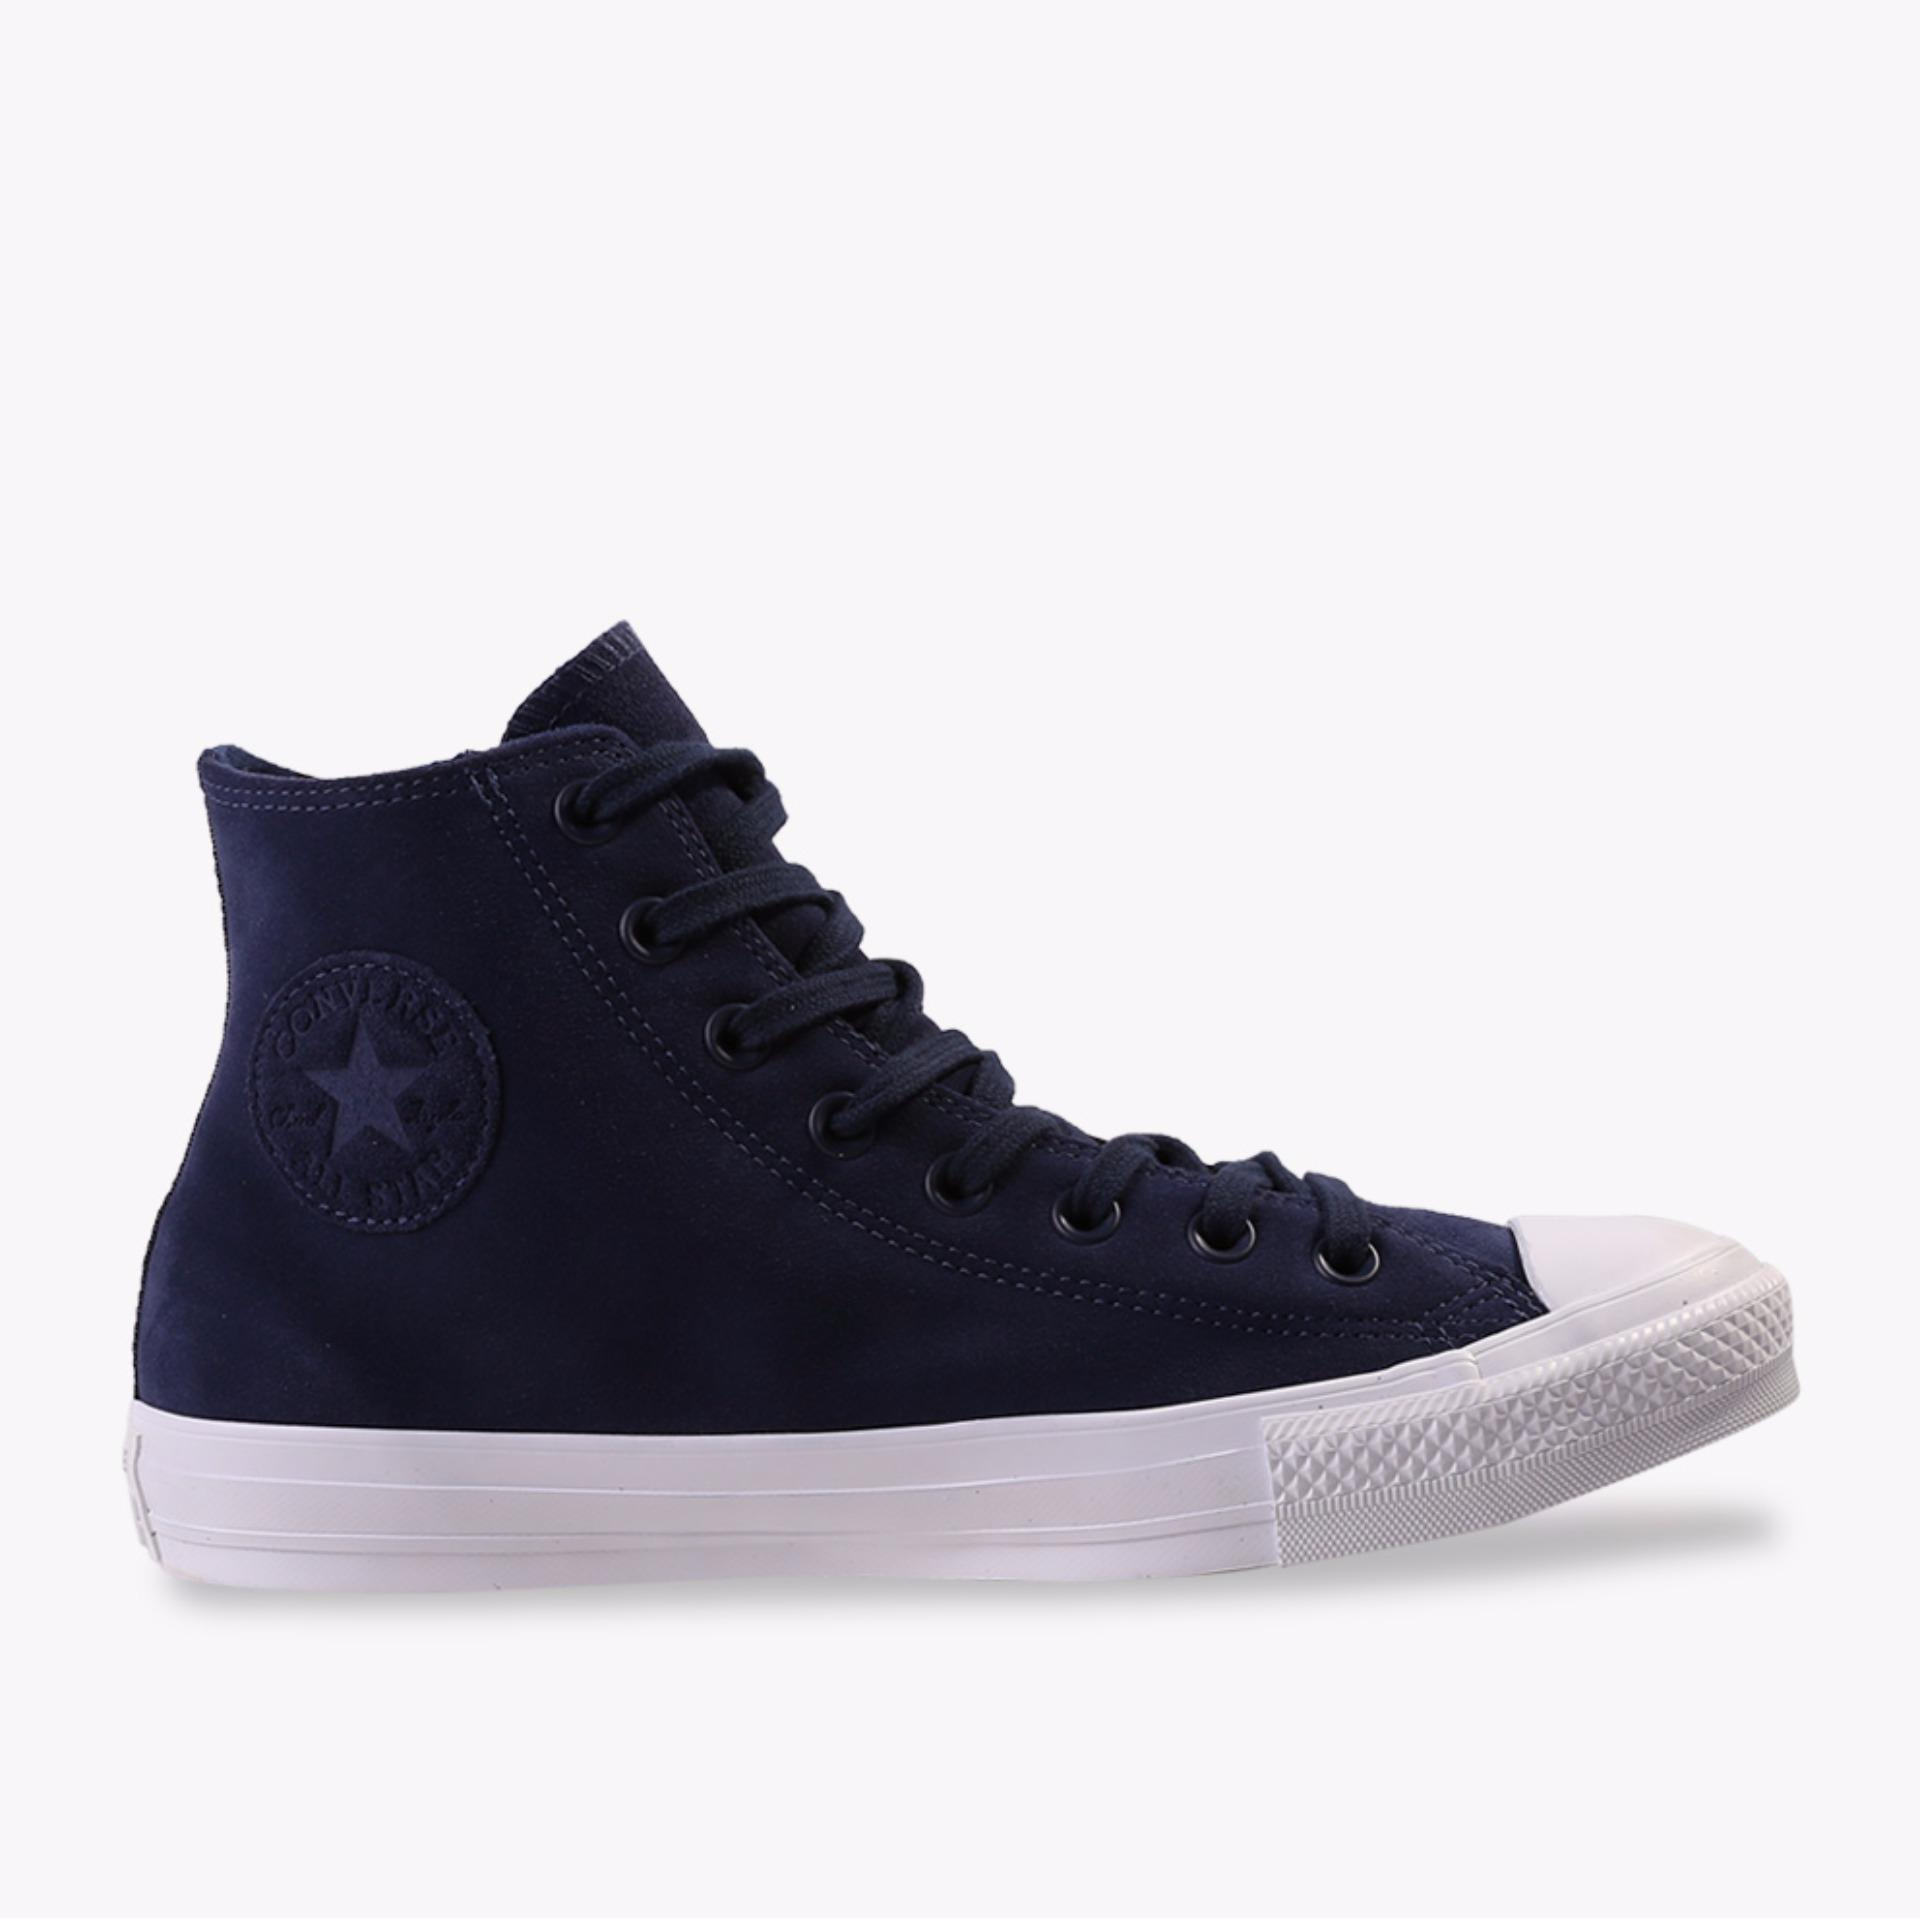 Harga Converse Chuck Taylor All Star Hi Men S Sneakers Shoes Navy Merk Converse